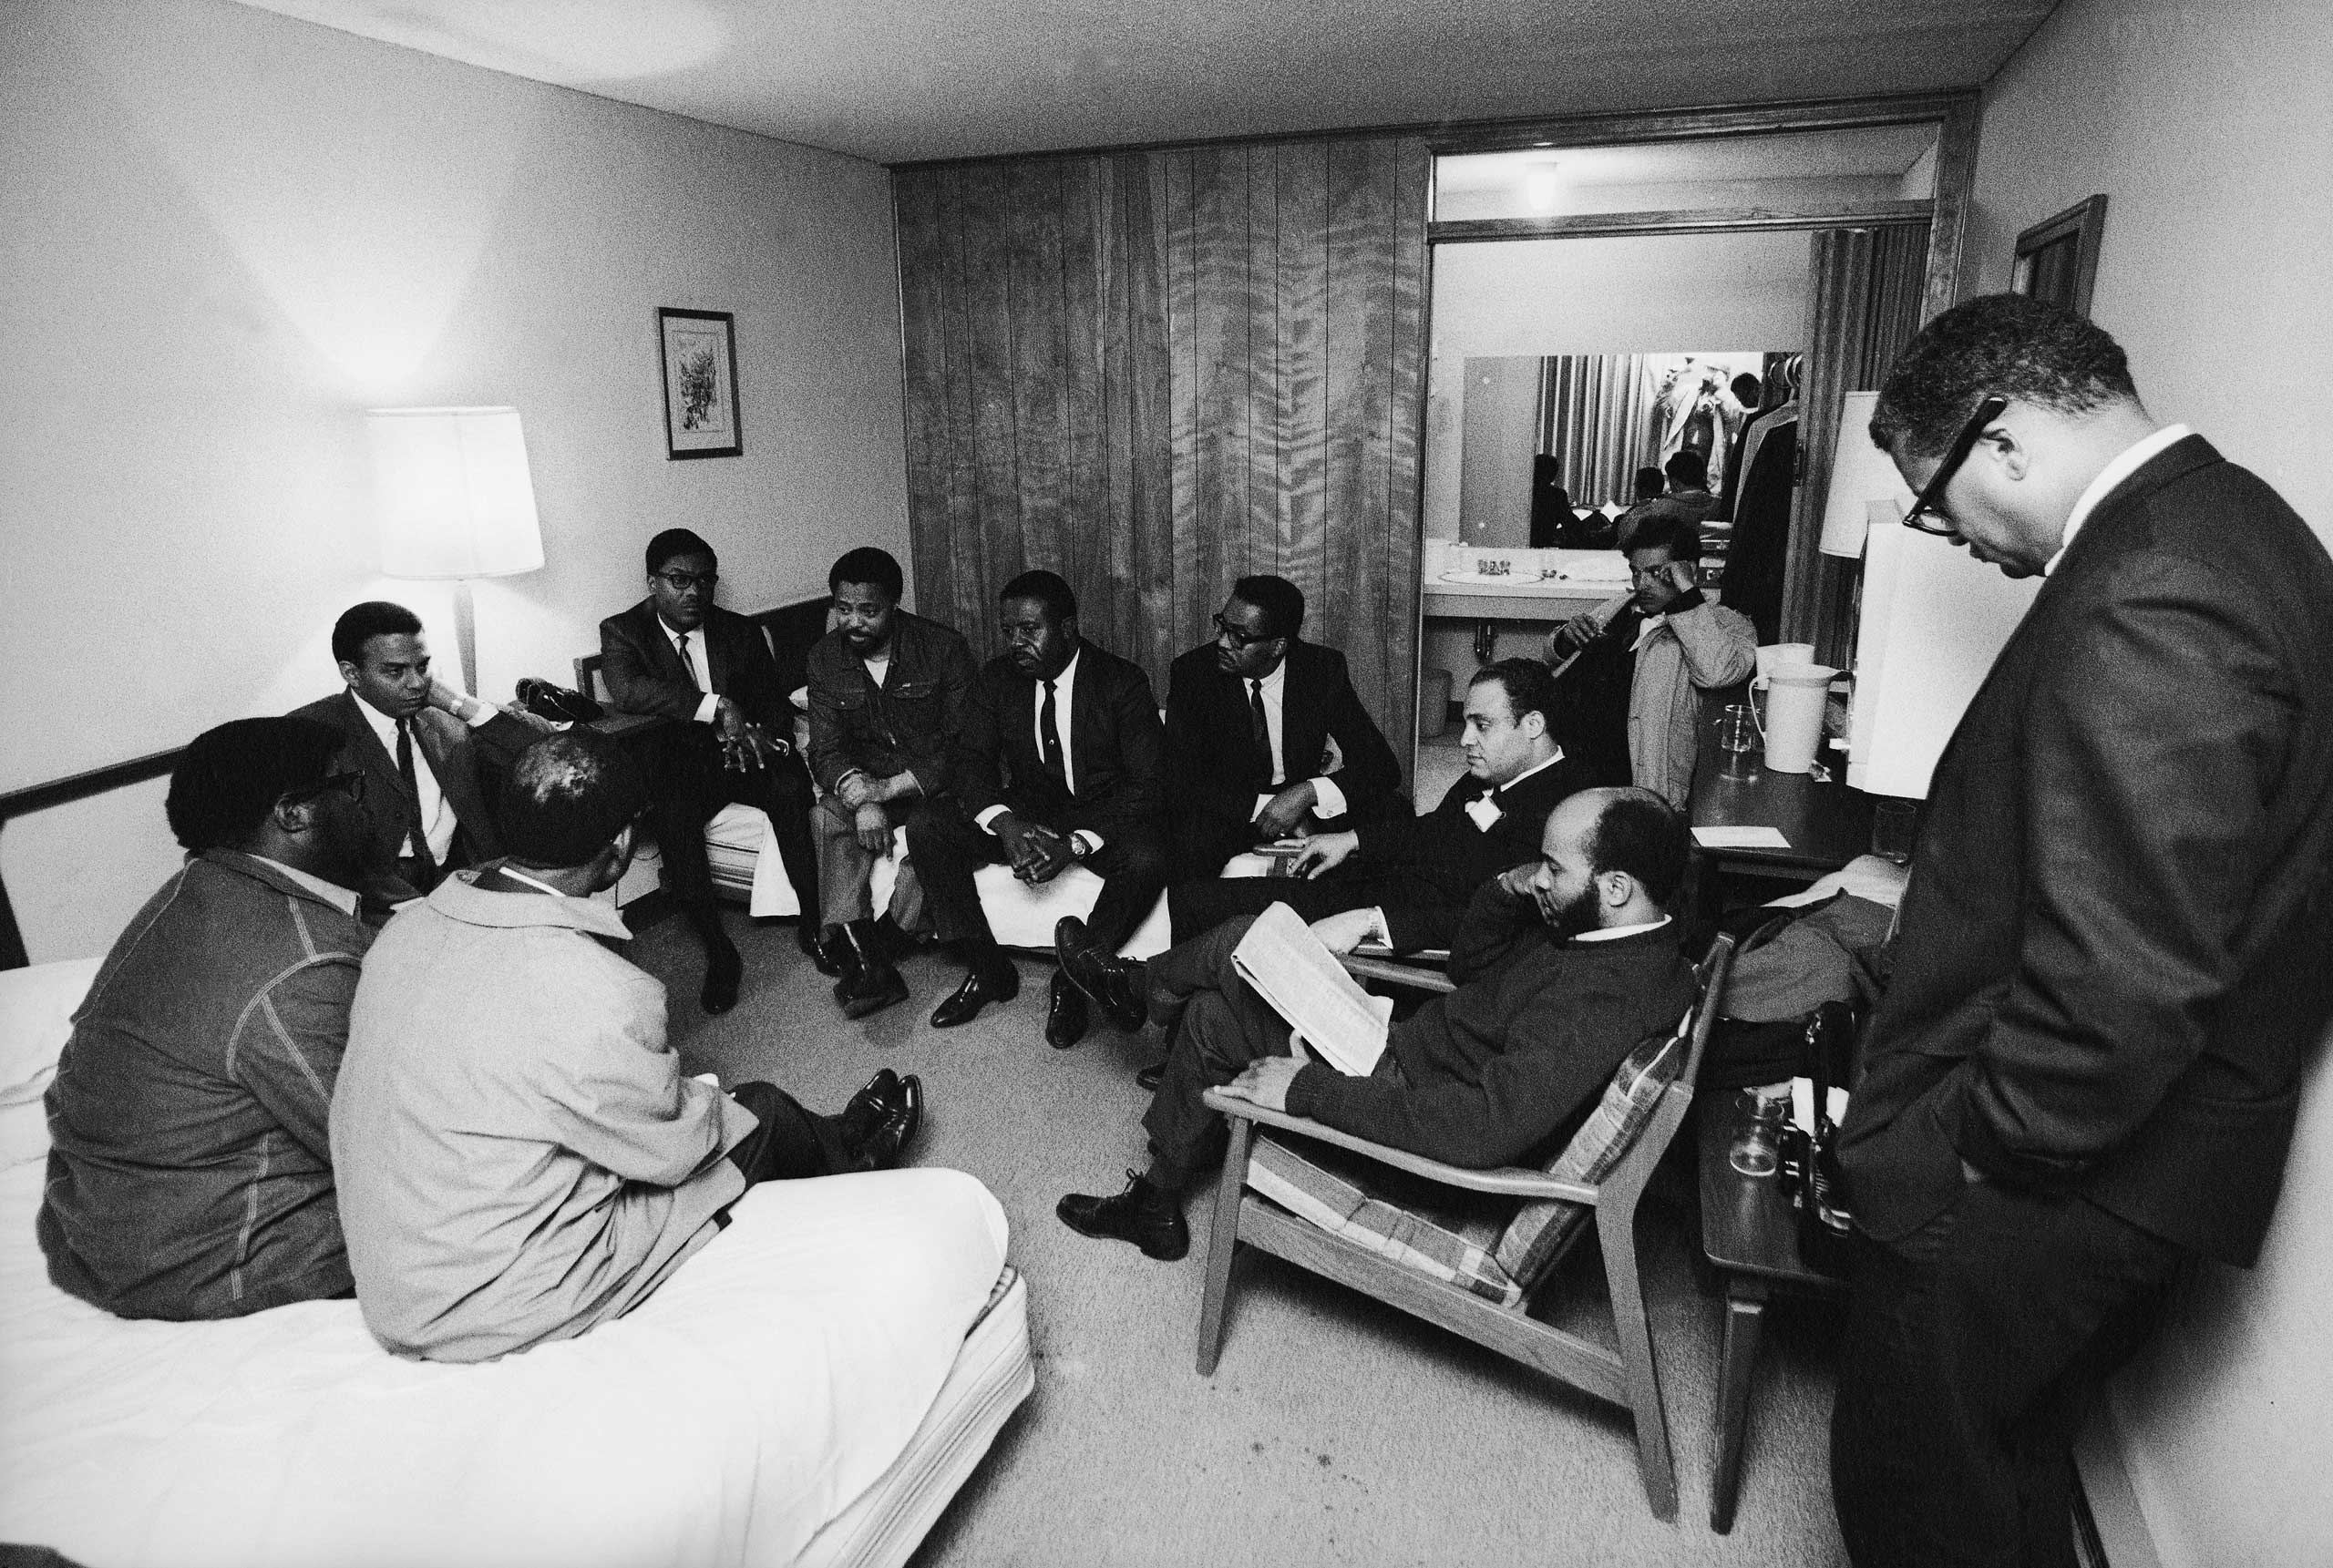 """<b>Not published in LIFE.</b> Stunned, silent members of the Southern Christian Leadership Conference in Dr. King's room at the Lorraine Motel, April 4, 1968, including Andrew Young (far left, under table lamp) and civil rights leader and Dr. King's colleague, Rev. Ralph Abernathy, in the middle on the far bed. """"I was very discreet,"""" Groskinsky recalls. """"I shot just enough to document what was going on. There, almost in the center of the picture, in the mirror, you can see my reflection. I took a couple of pictures and just kind of backed off."""""""